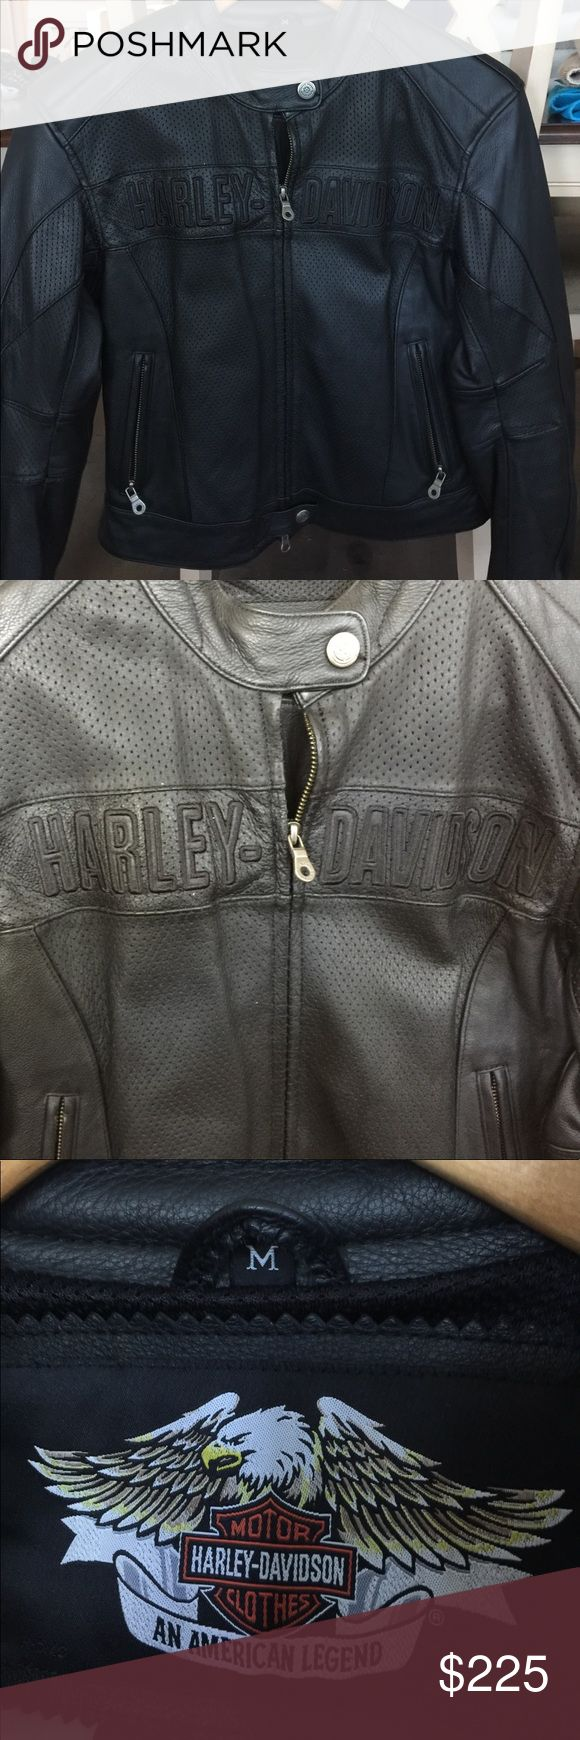 Authentic Harley Davidson leather jacket. This jacket has only been worn 2 times.  It is like new with no wear showing at all.  It has padded elbows.  I purchased directly from Harley store.  It is approximately 10 years old and looks new. Harley-Davidson Jackets & Coats